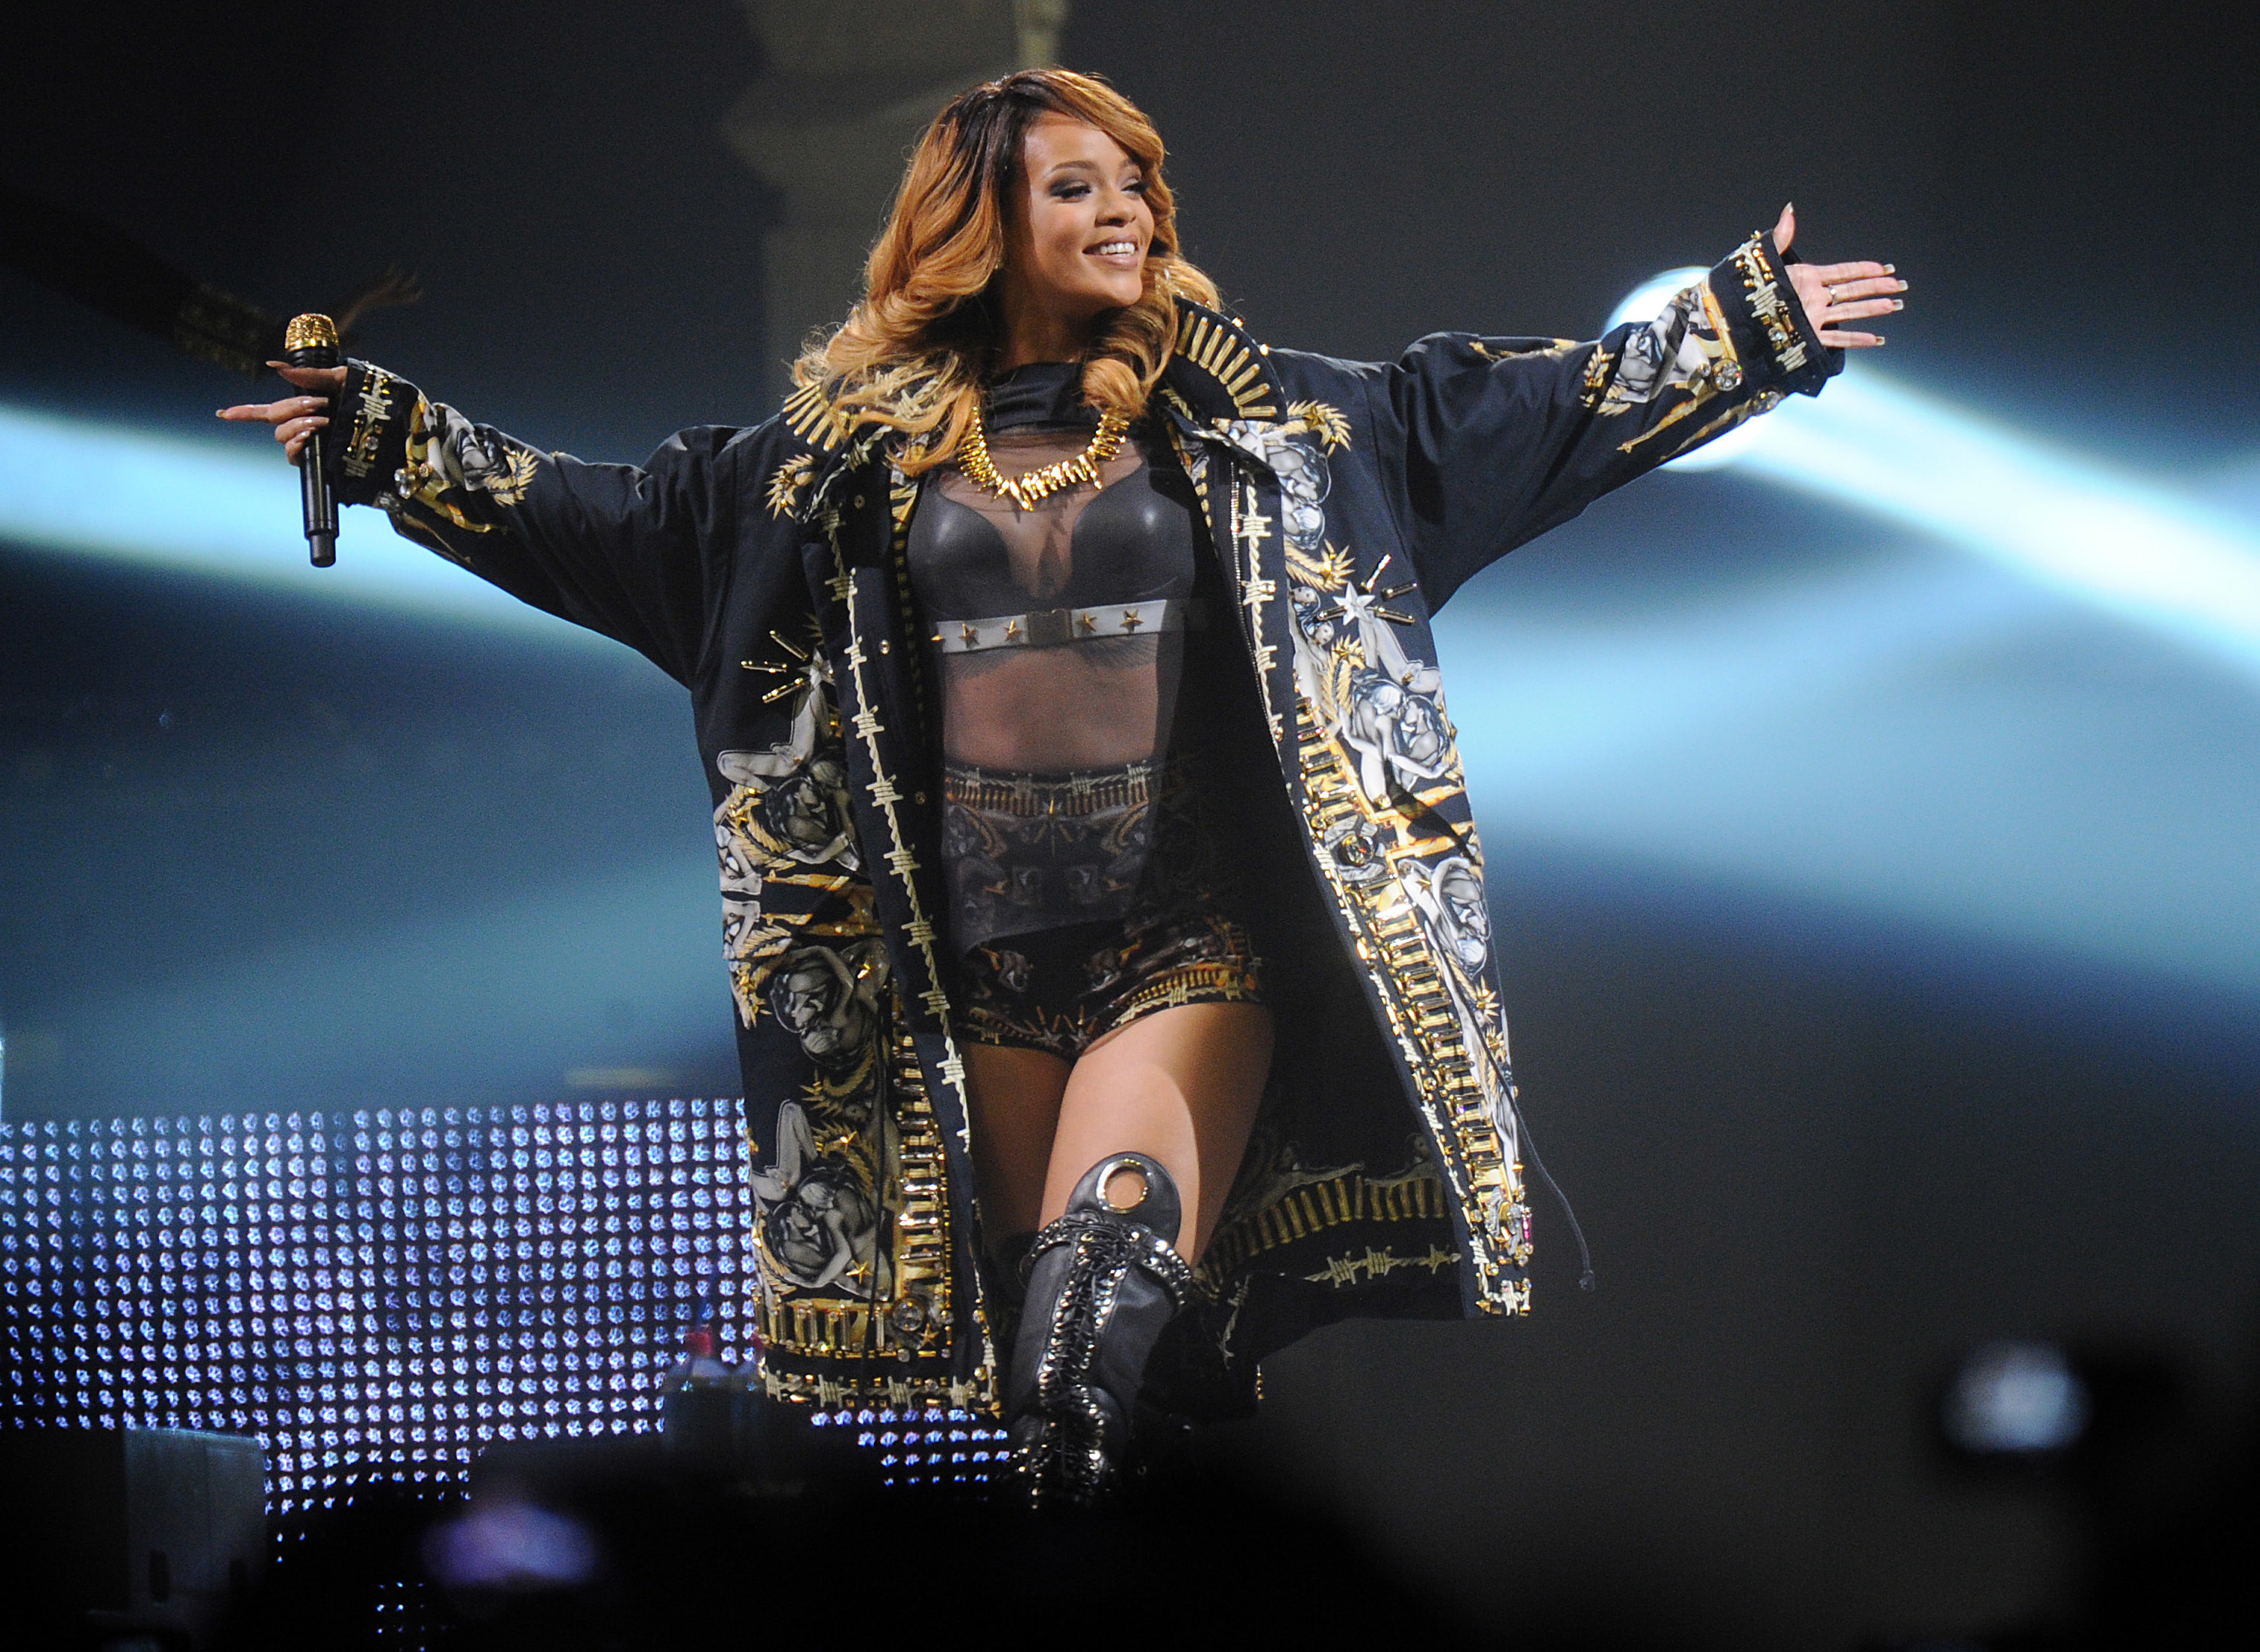 Rihanna performs during a concert in 2013